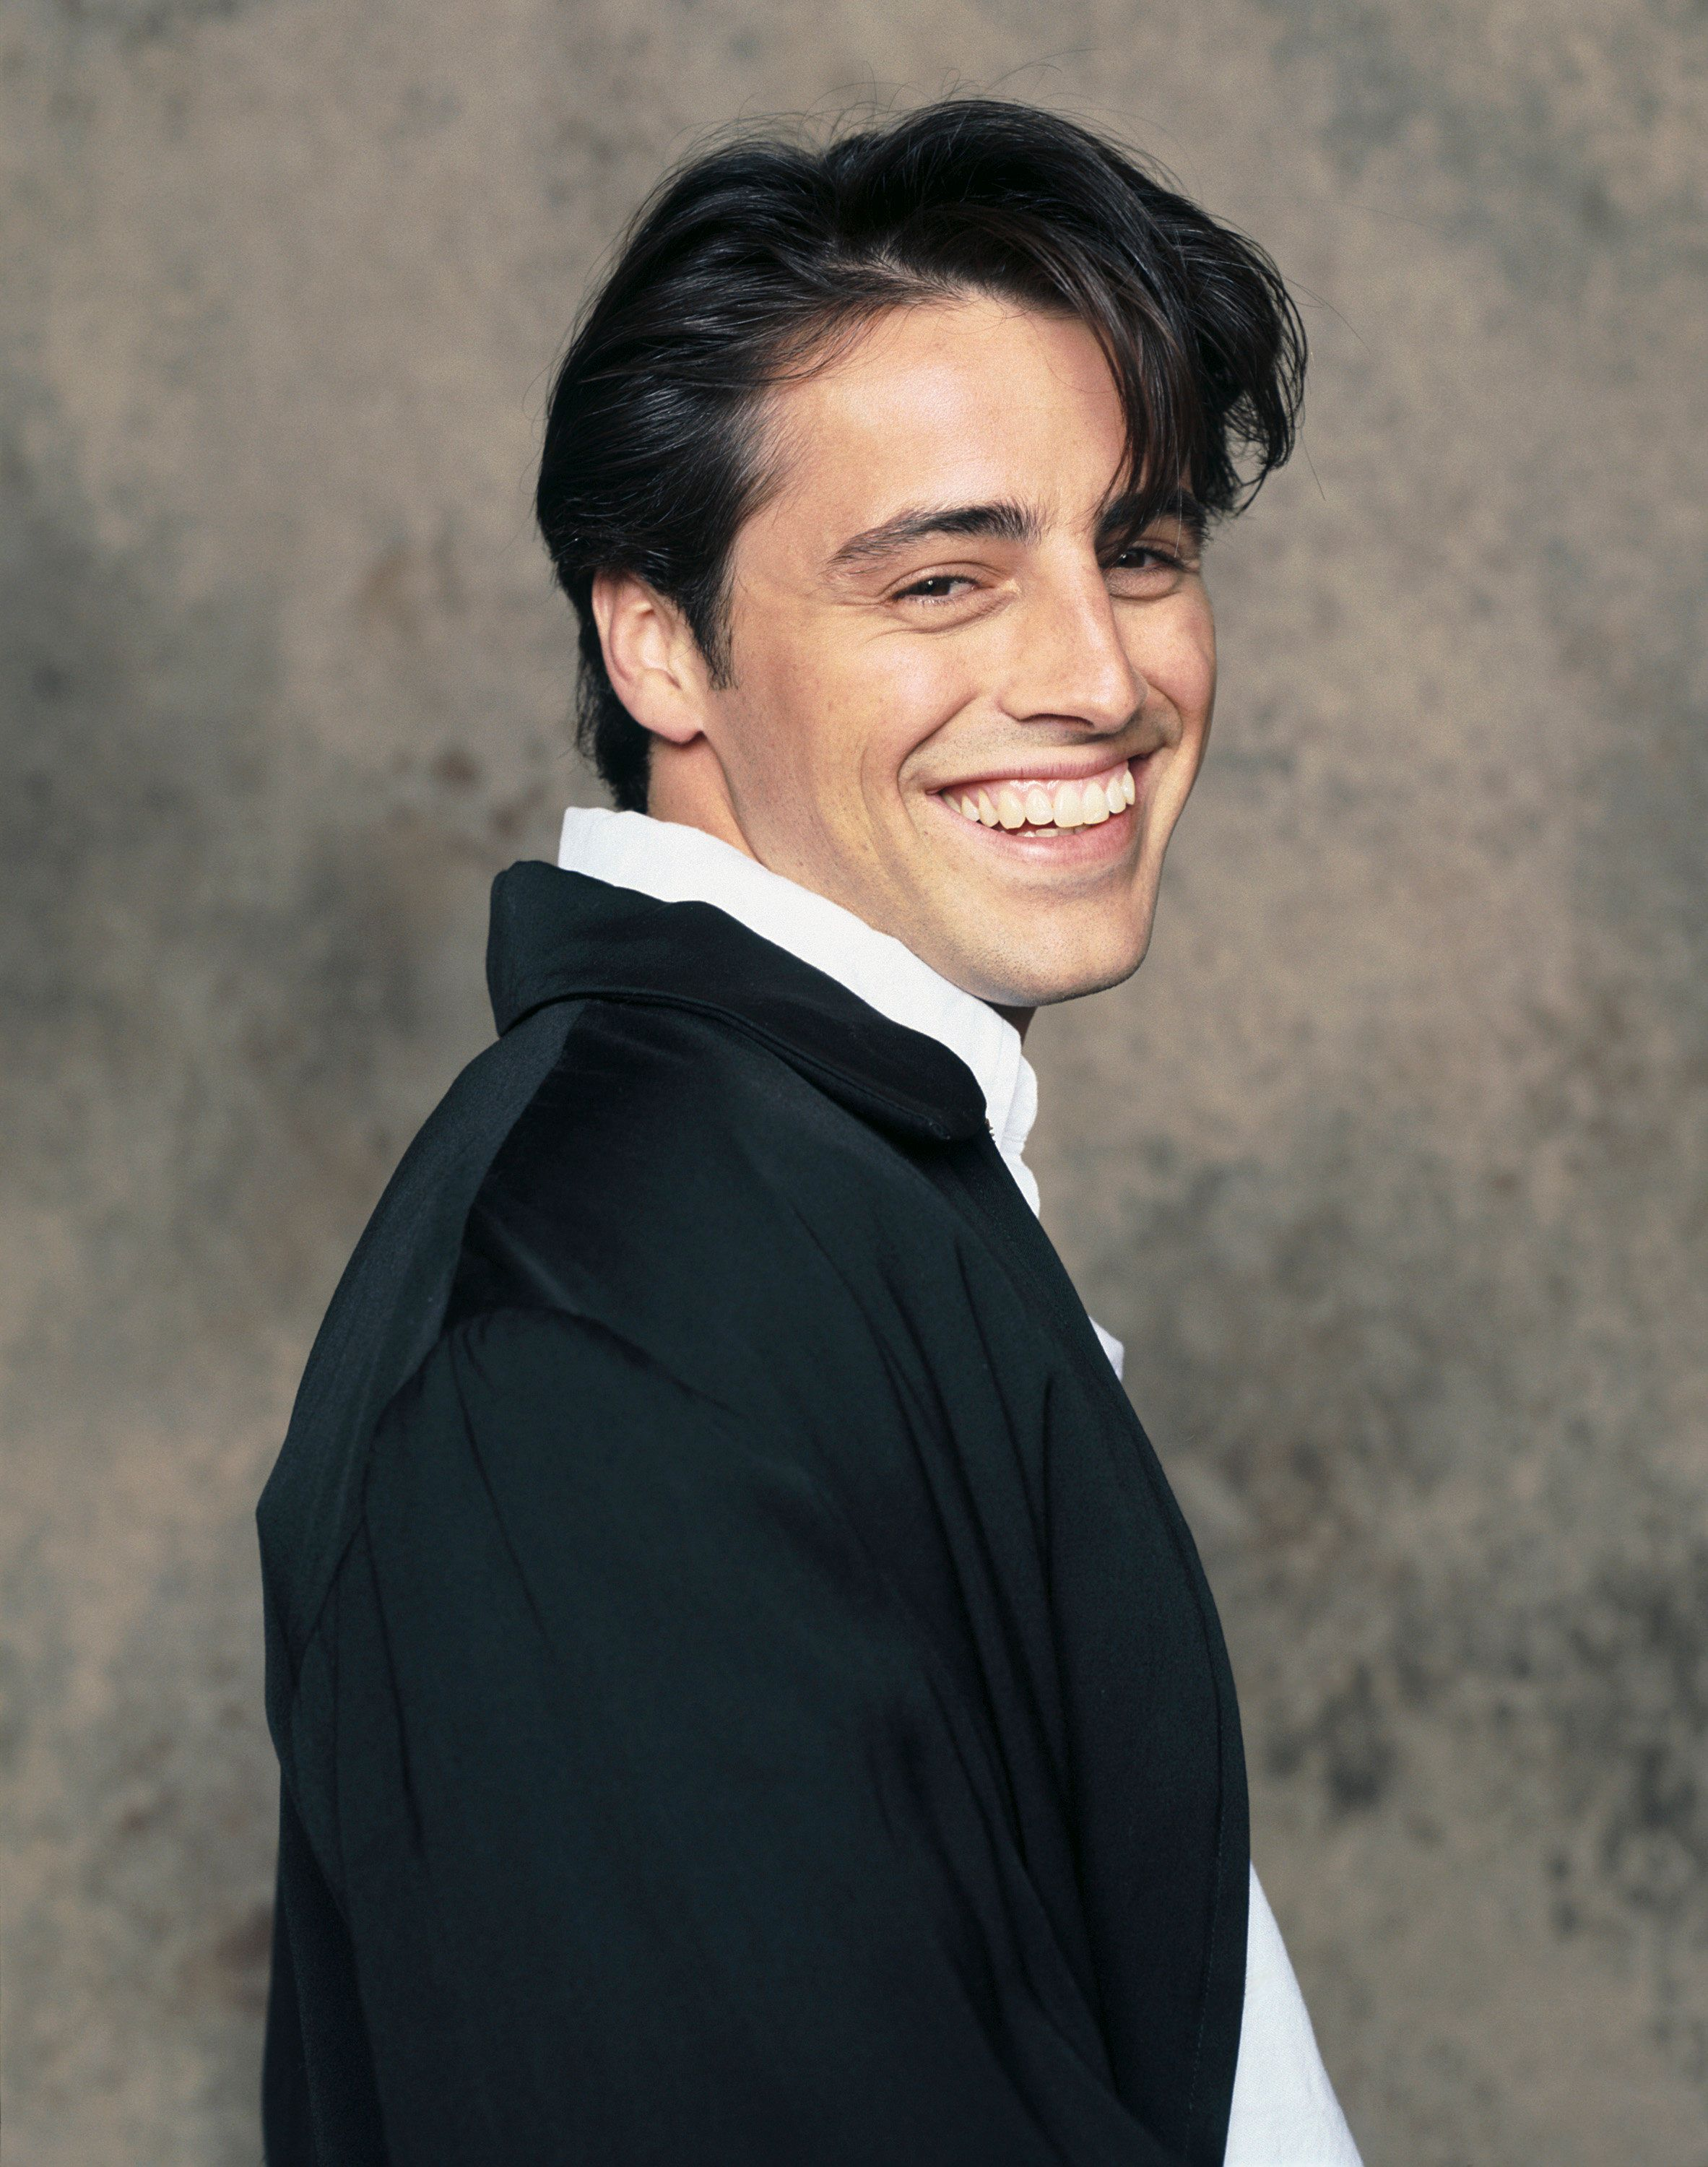 FRIENDS -- Pictured: Matt LeBlanc as Joey Tribbiani  -- (Photo by Reisig & Taylor/NBC/NBCU Photo Bank via Getty Images)